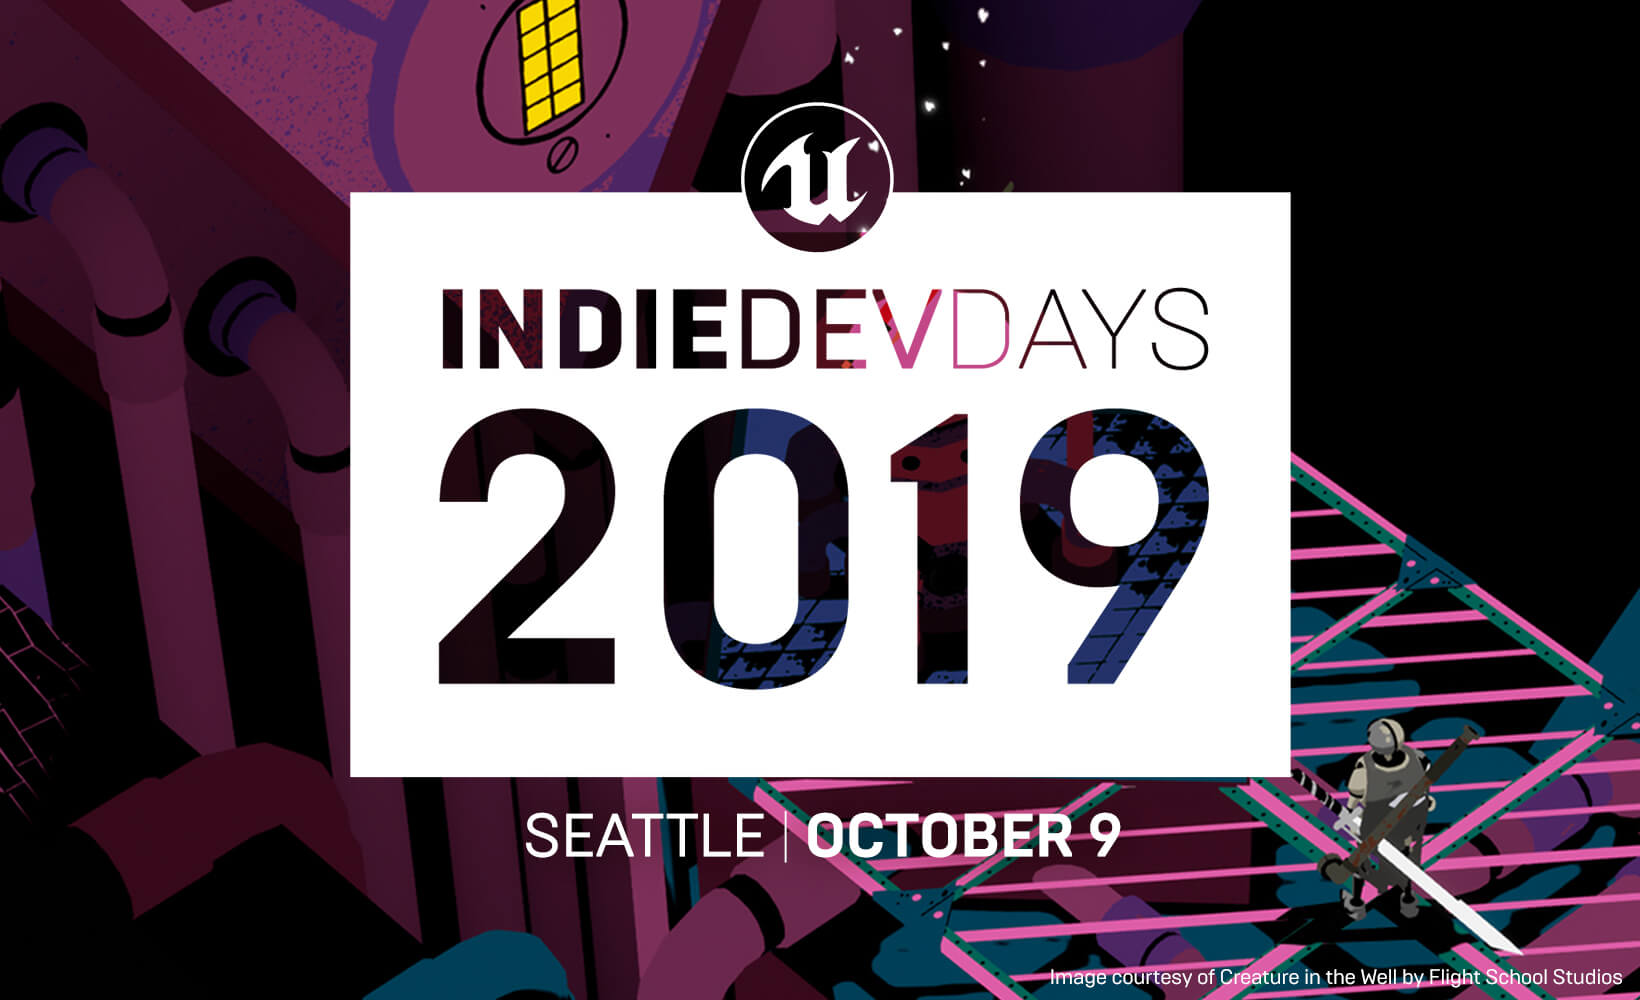 Events_DevDays2019_blog_body_indie_image.jpg